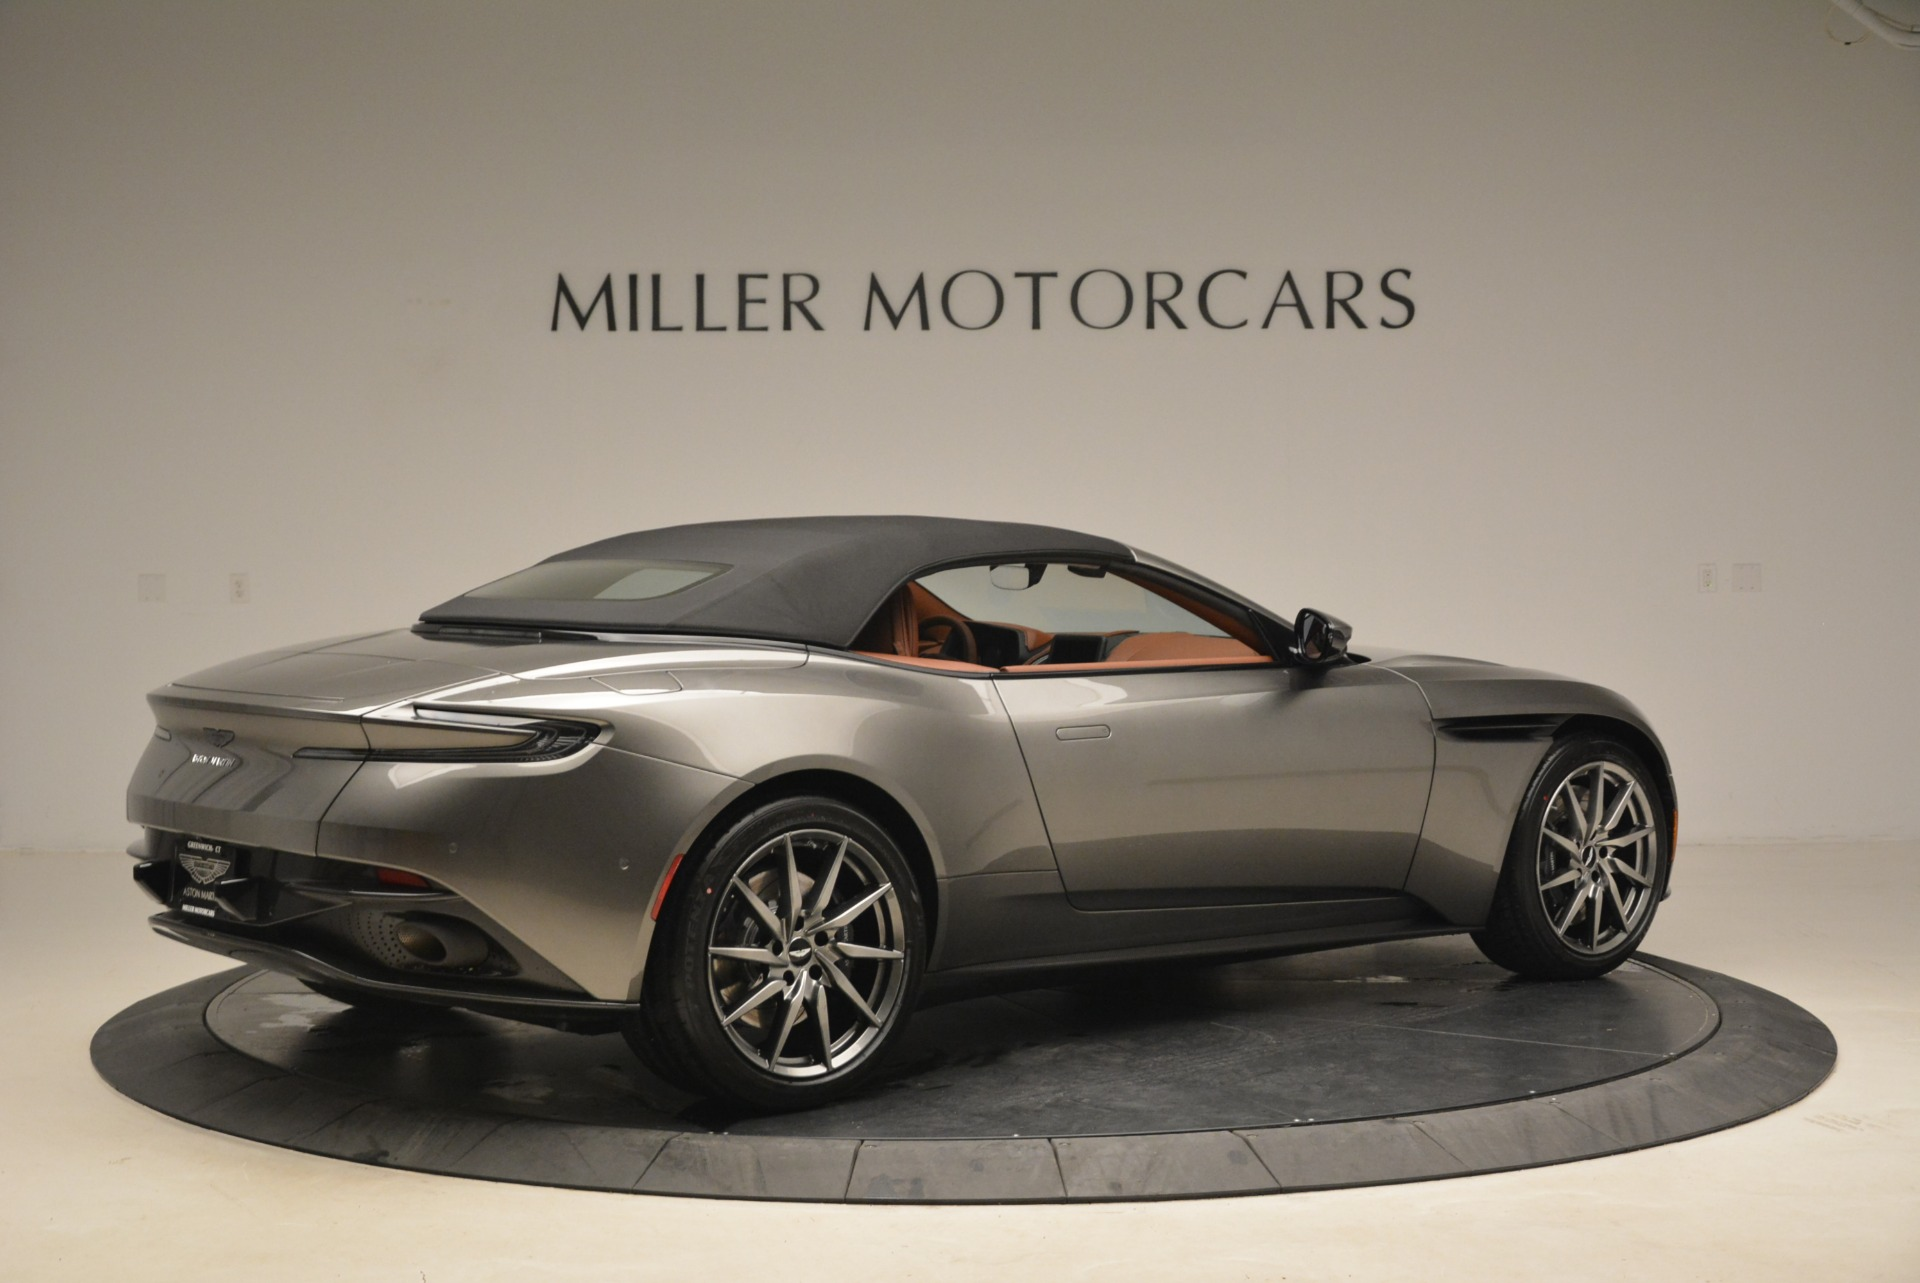 New 2019 Aston Martin DB11 Volante  For Sale In Greenwich, CT. Alfa Romeo of Greenwich, A1284 2209_p20